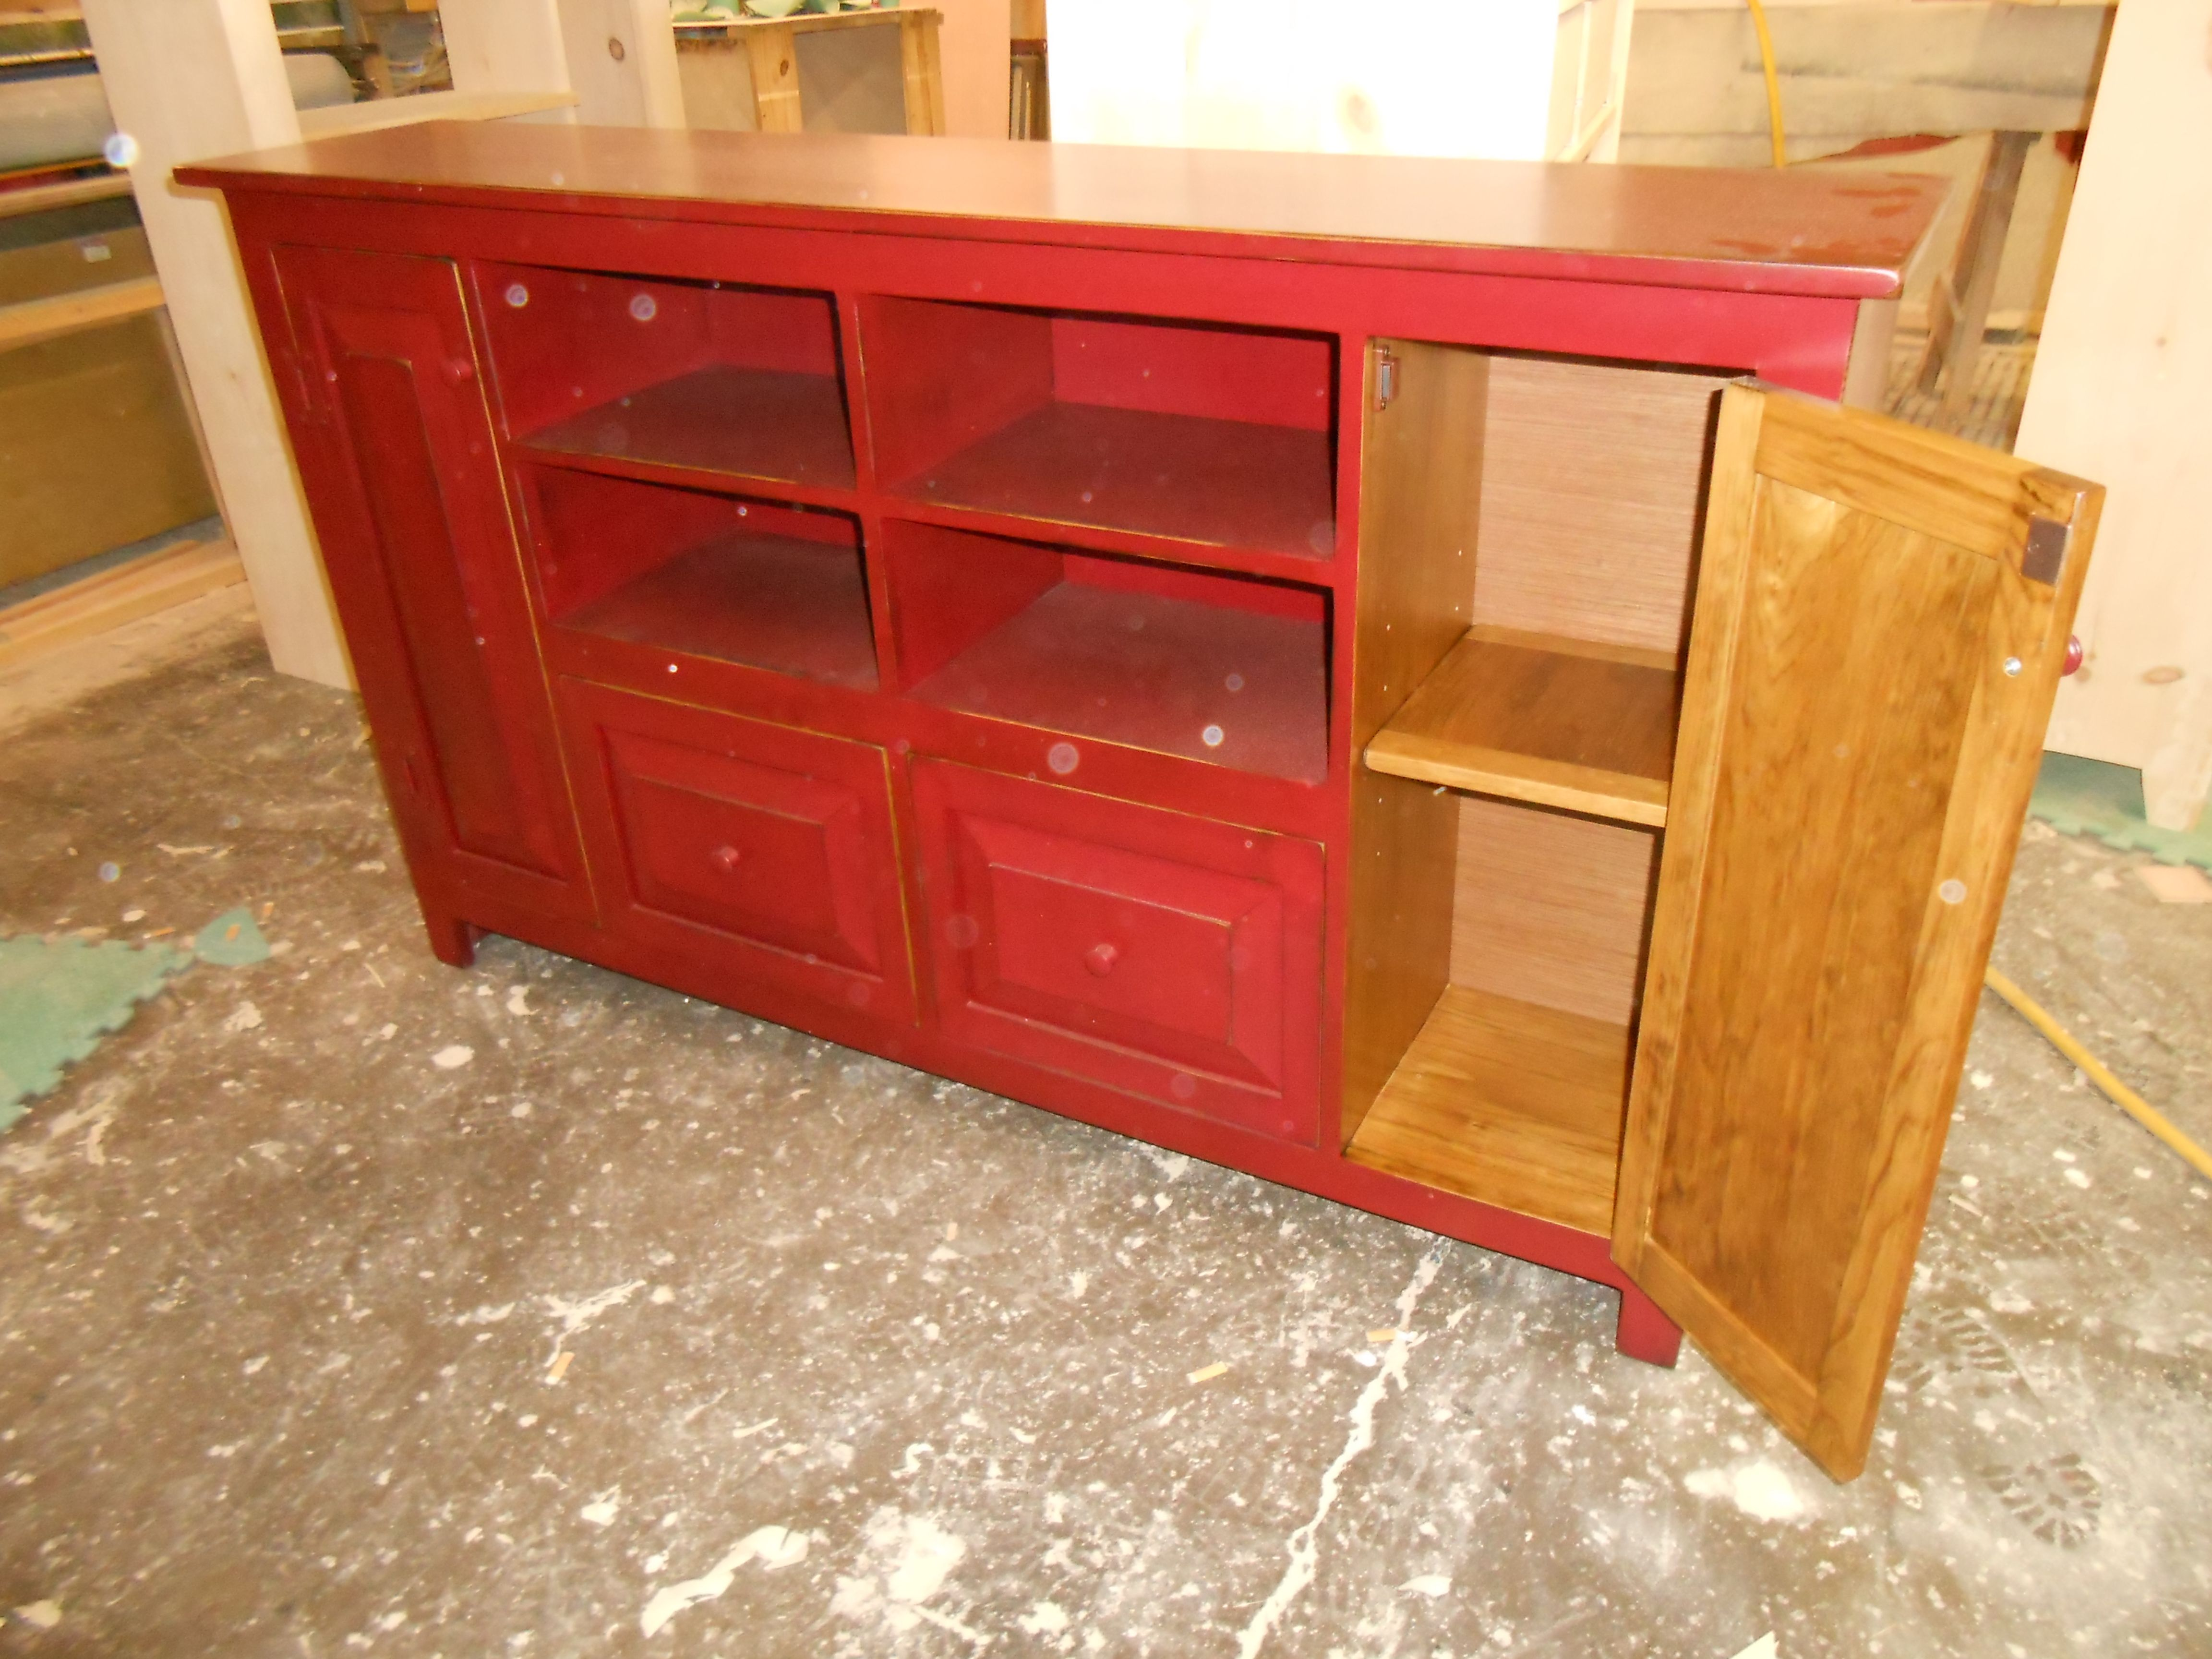 tennessee together with on unfinished bedroom furniture nashville tn